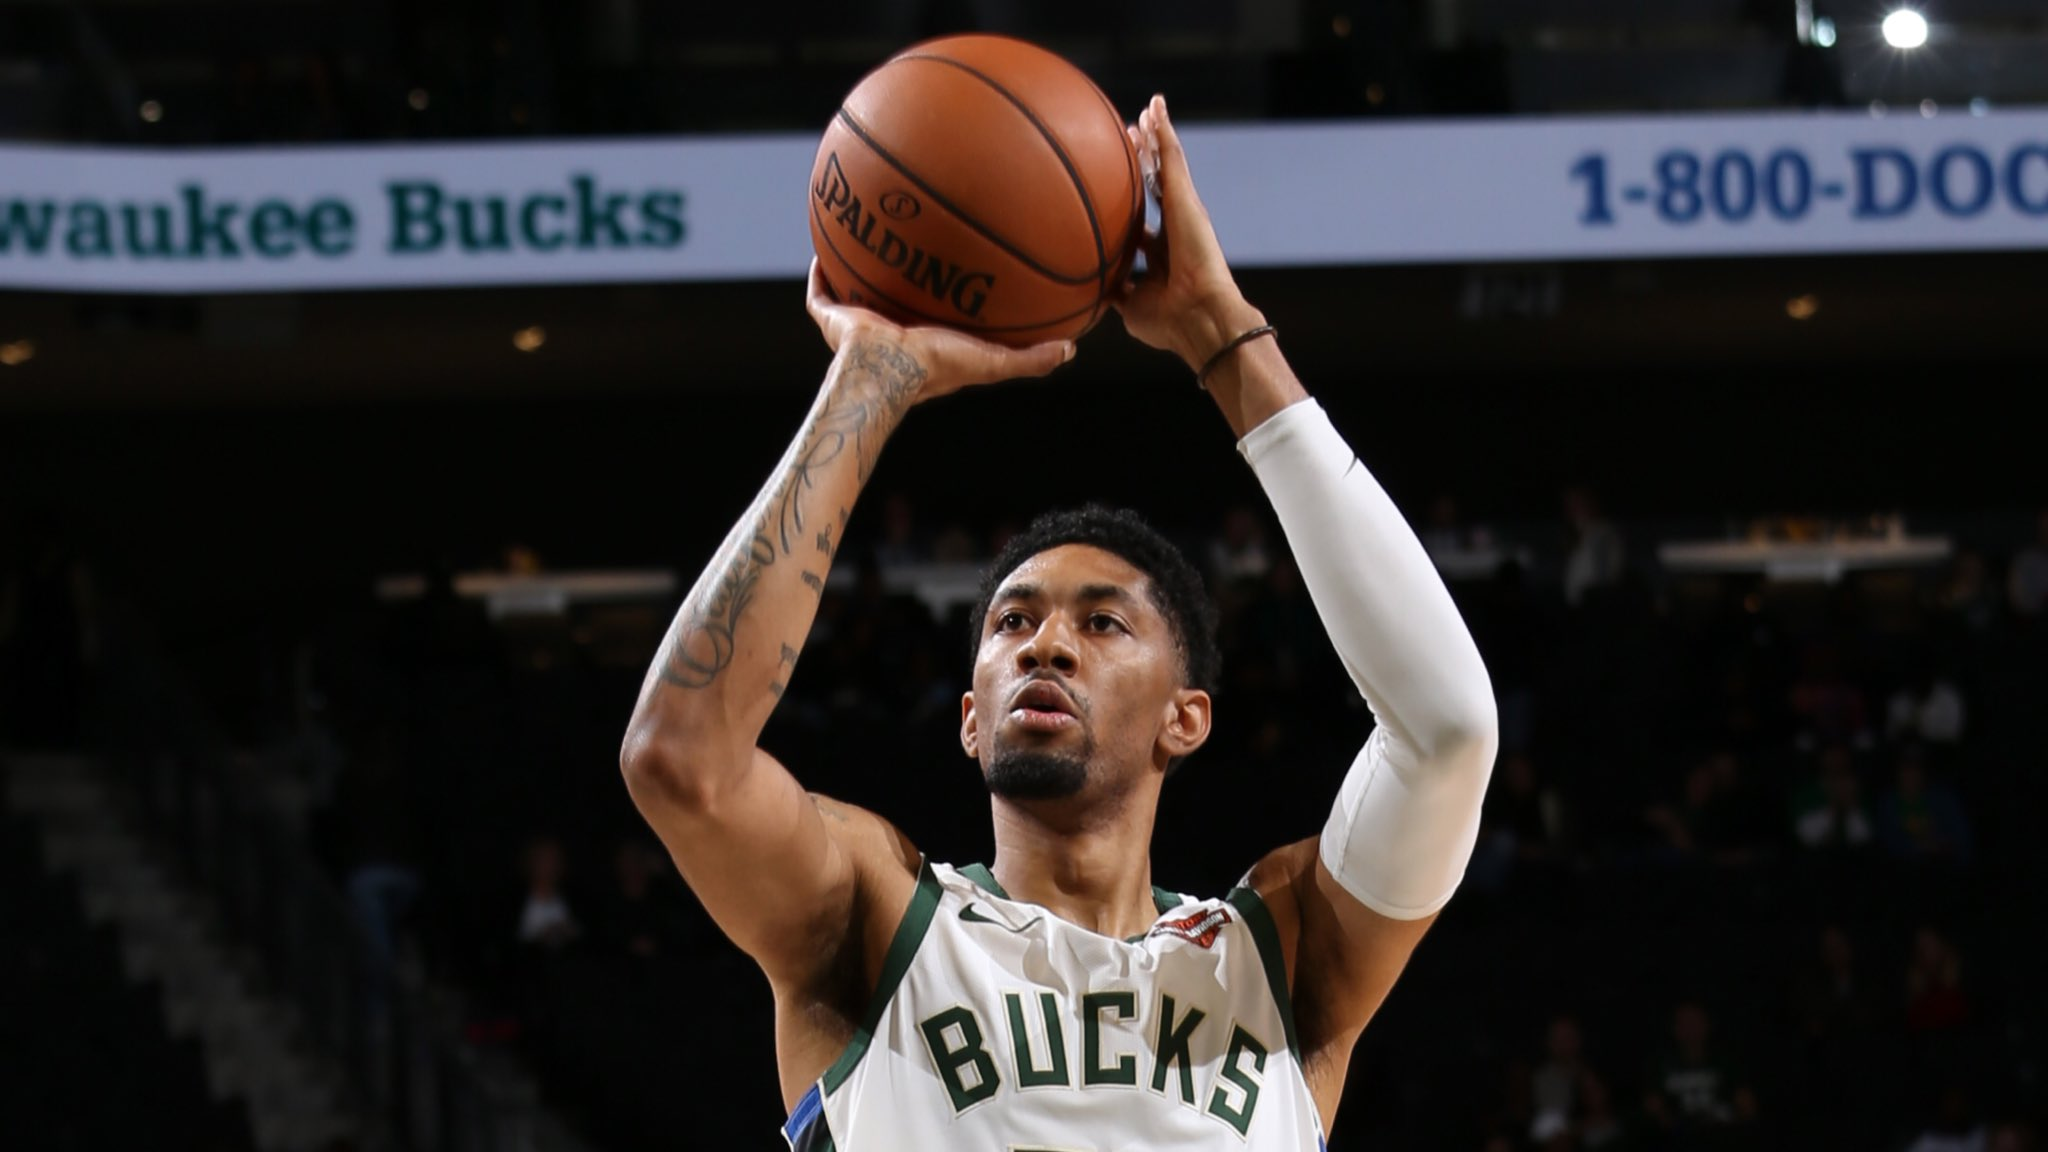 be2be4e8e5d The Bucks have assigned Christian Wood to the  WisconsinHerd. Wood has  played in four games for the Herd this season and is averaging 22.5 points